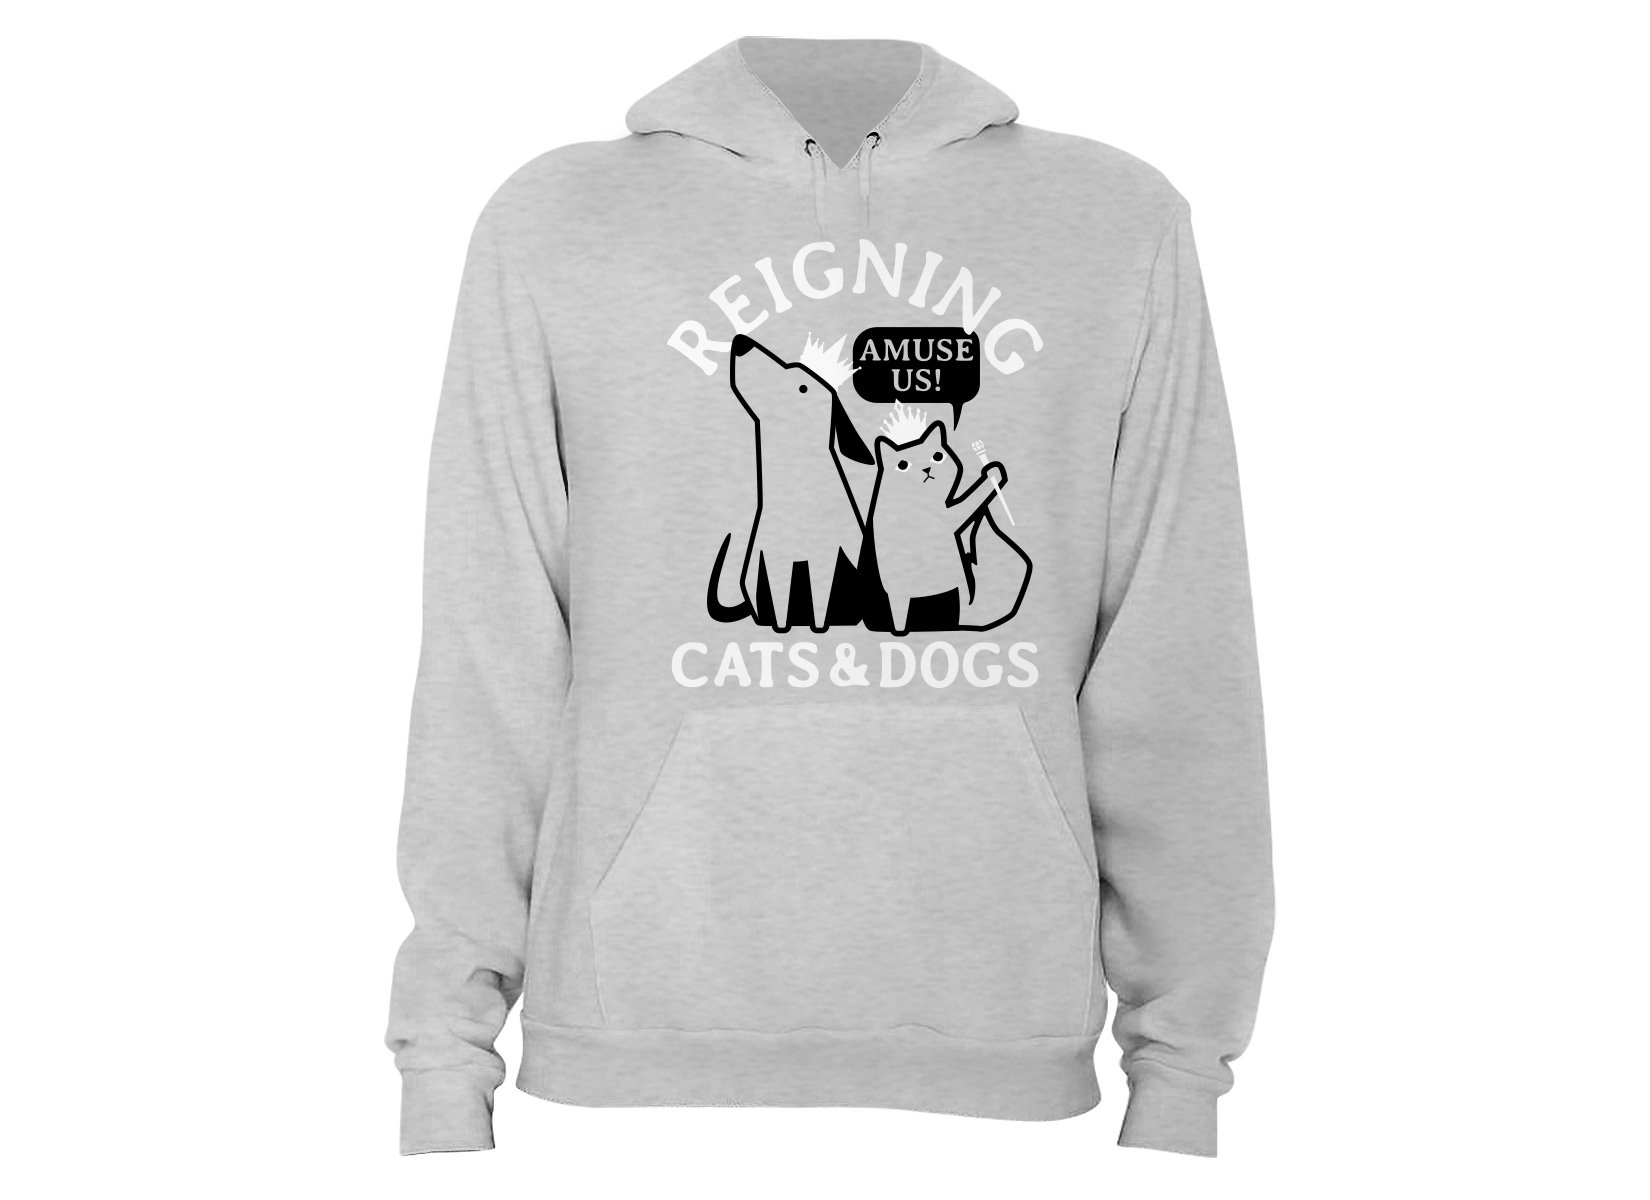 Reigning Cats And Dogs on Hoodie